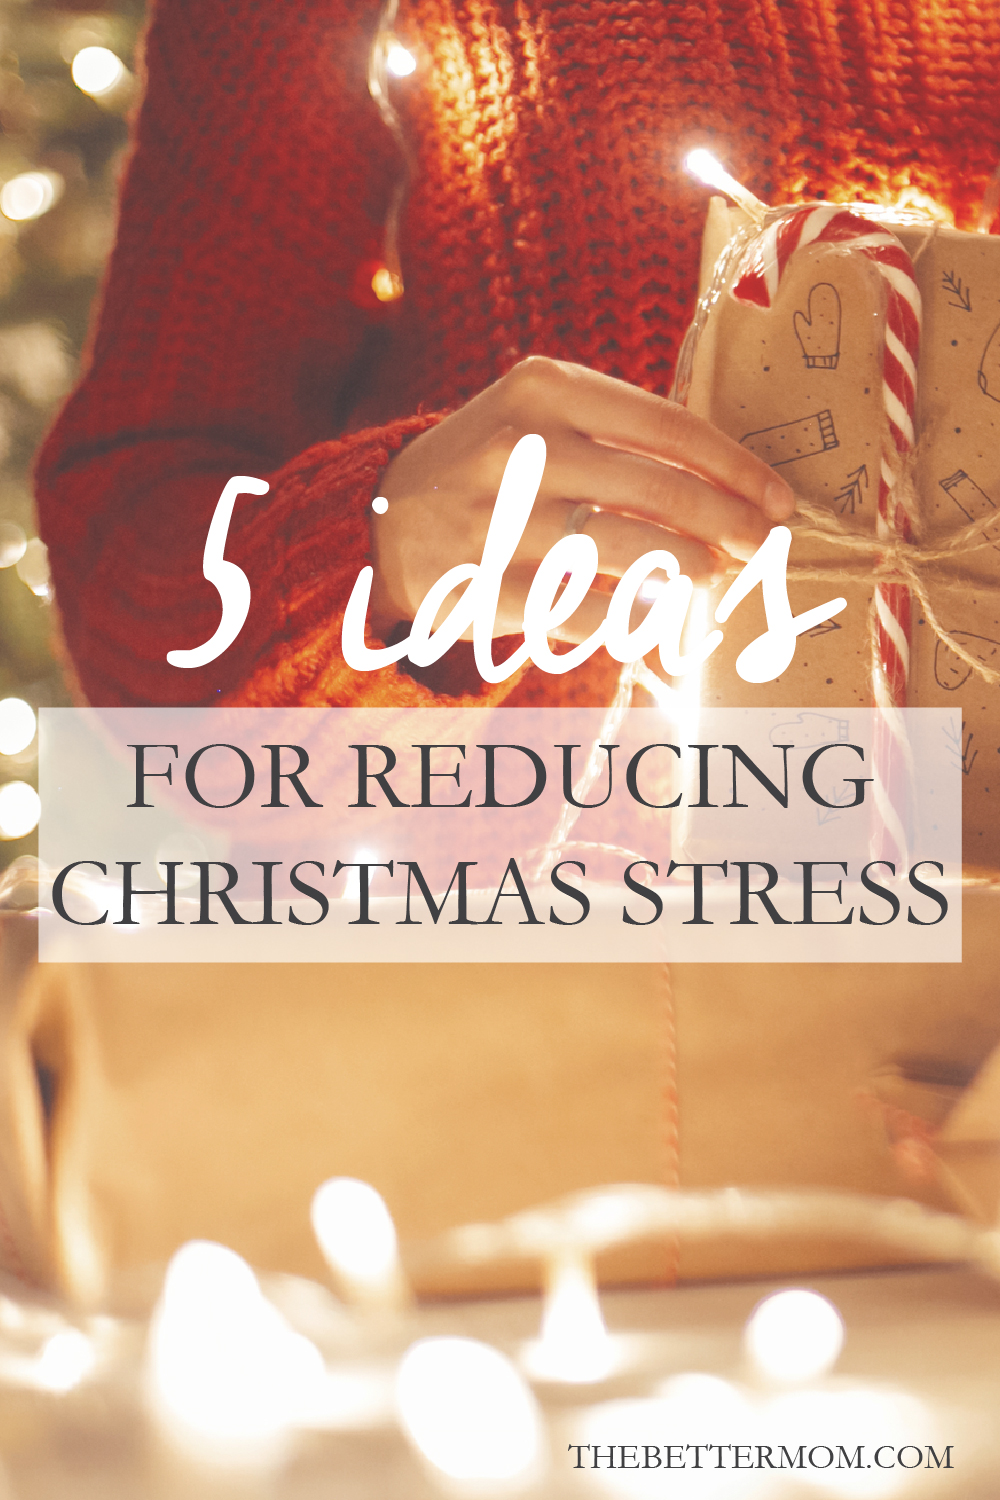 Are you ready for the holidays? Whether you stay cool under pressure or tend toward stress, at this time of year all of us tend to... scramble. Today, we're pausing to plan before the season is here so that we can celebrate Christmas with intention!